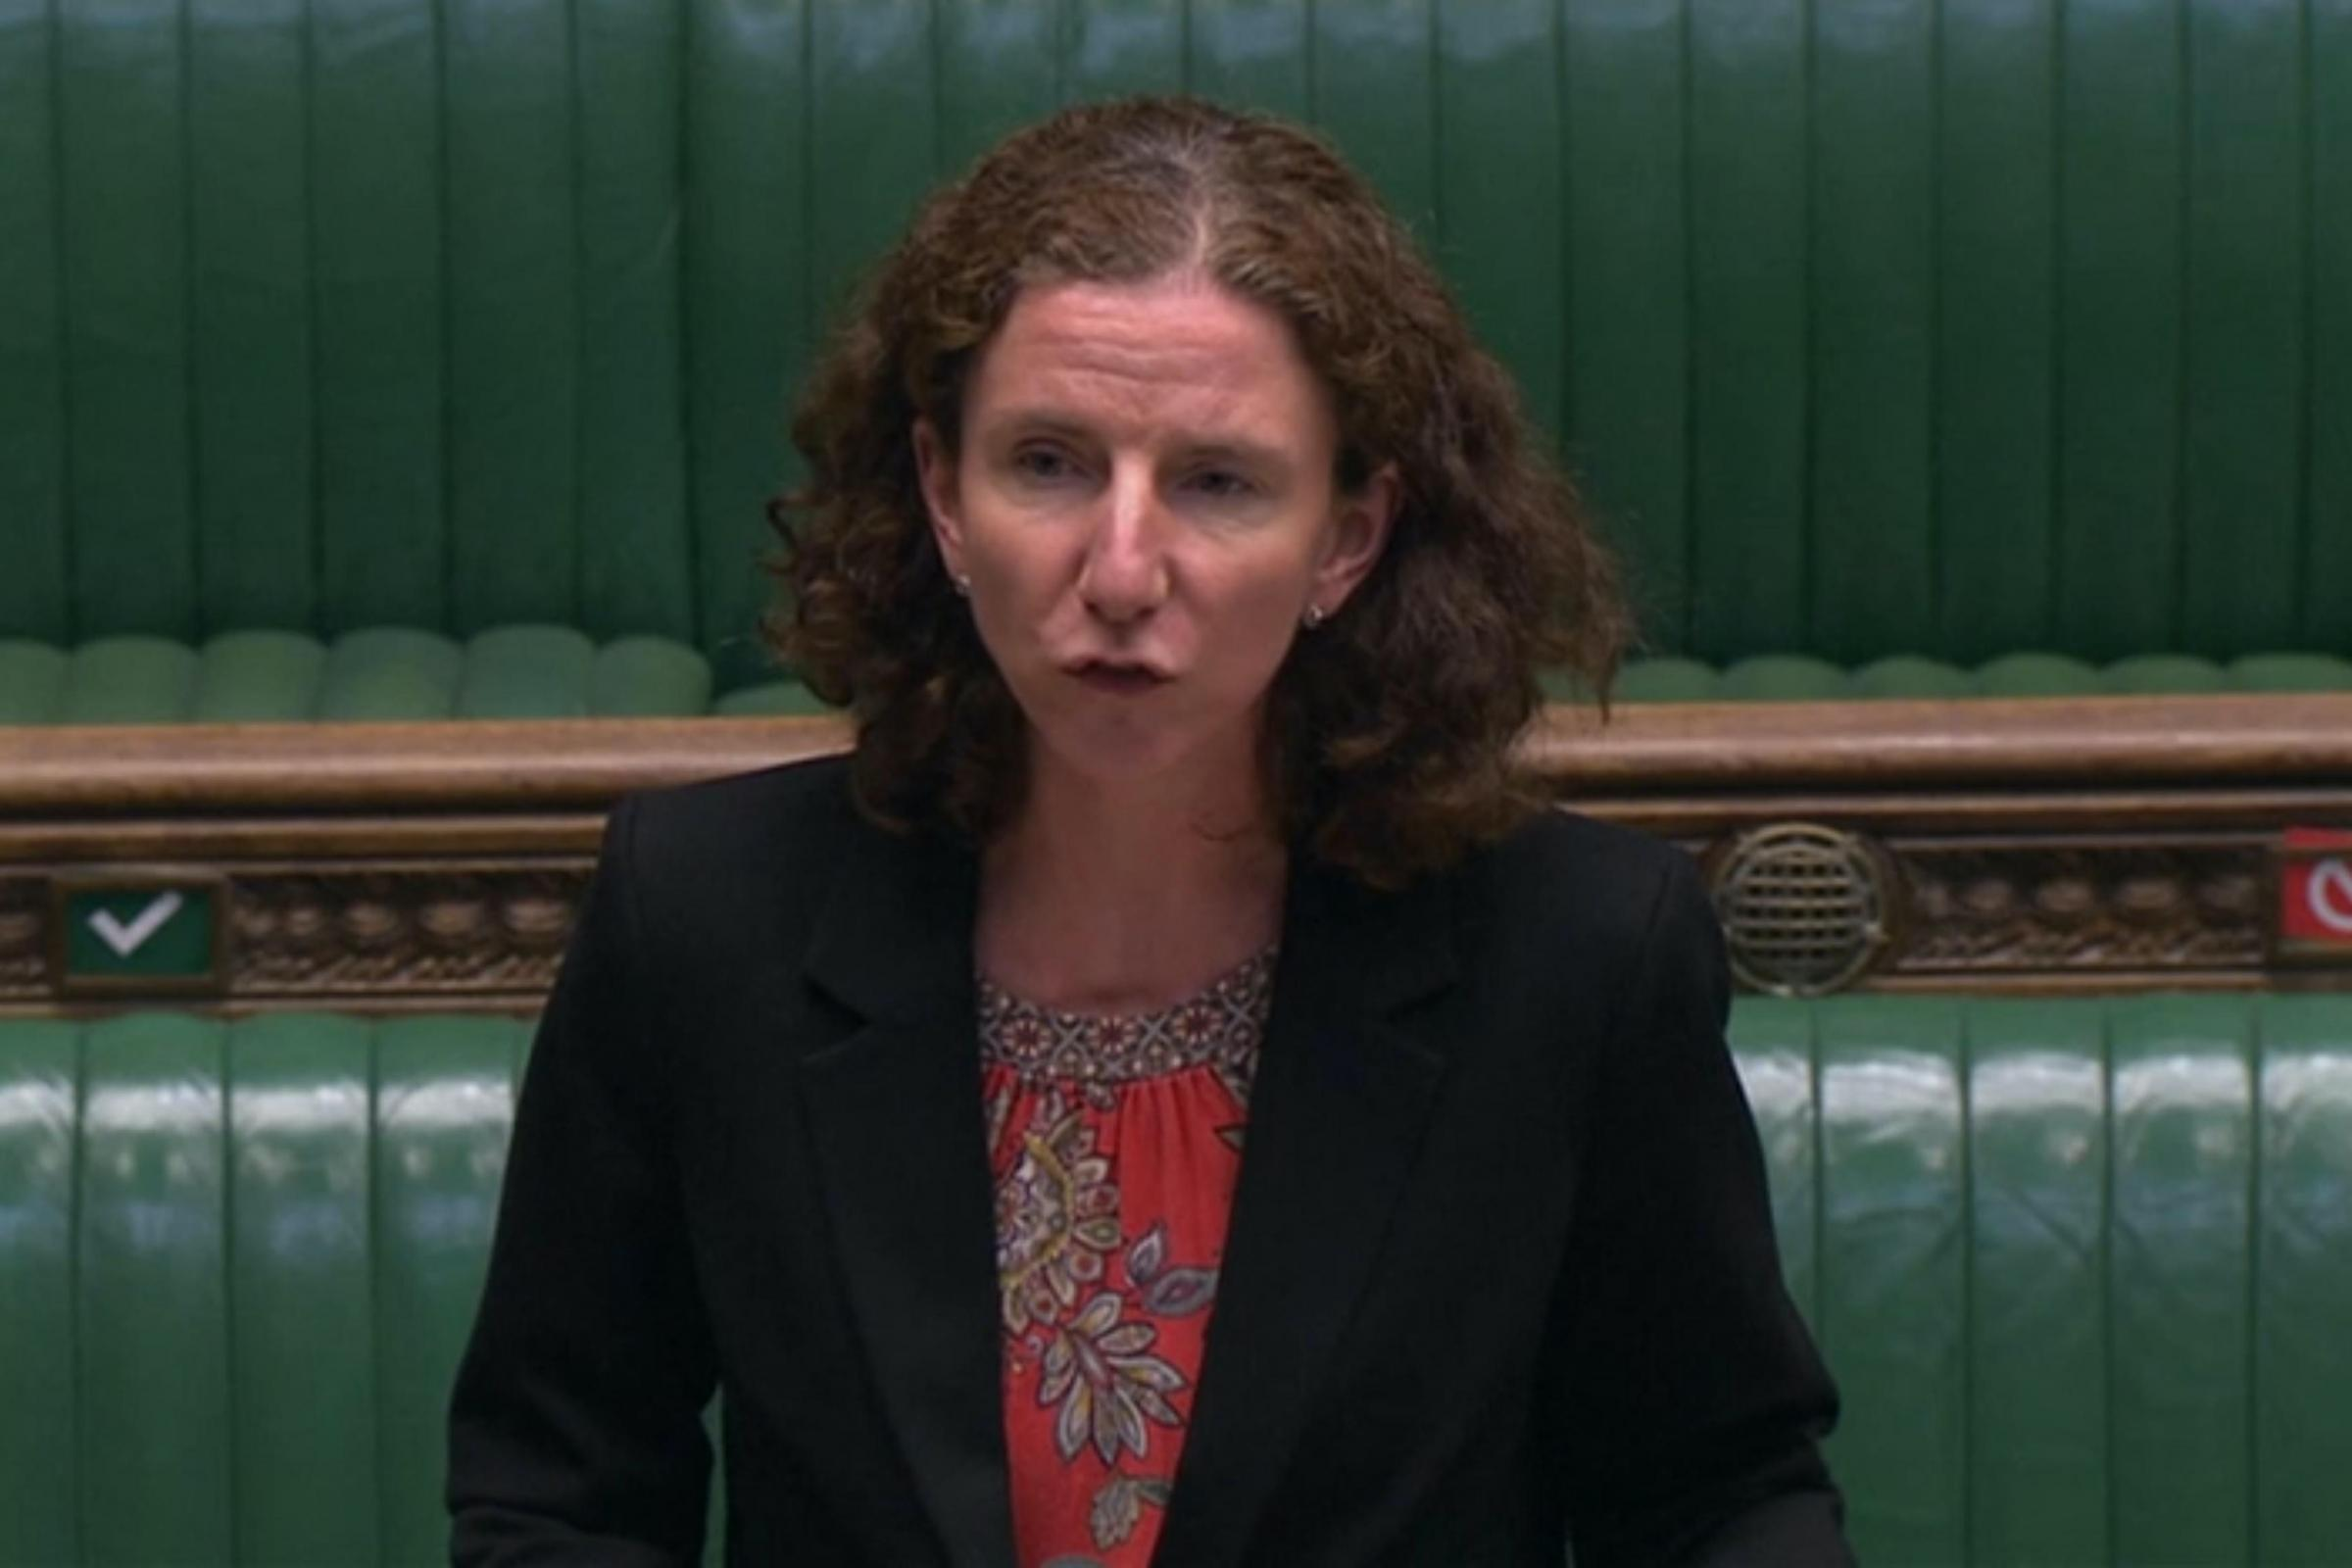 Government 'finally budged' says Anneliese Dodds on taxing big tech